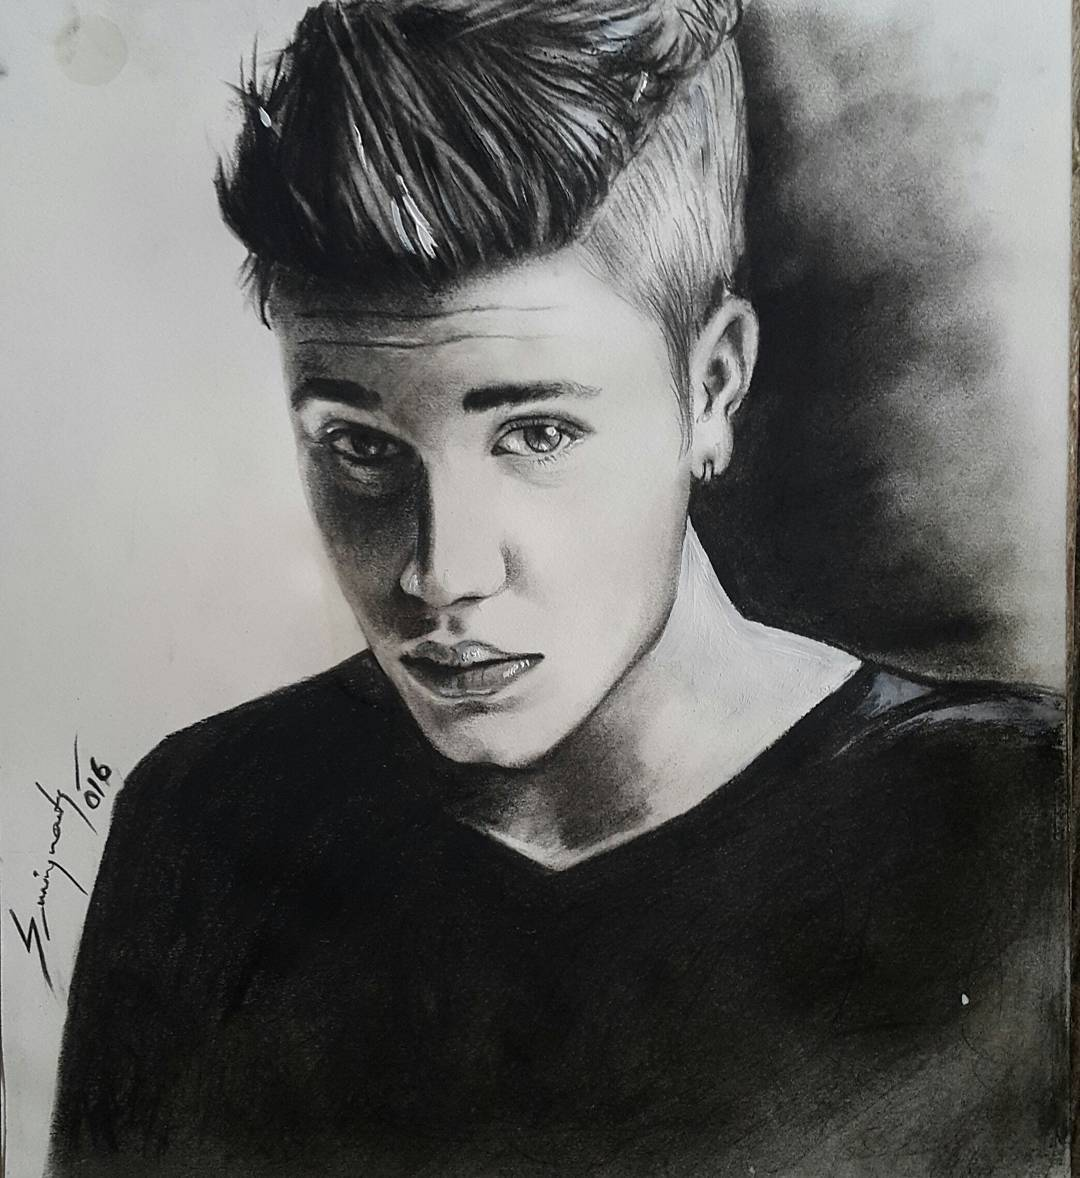 Justin Bieber Portrait Drawing, Tattoo Artist in Nepal